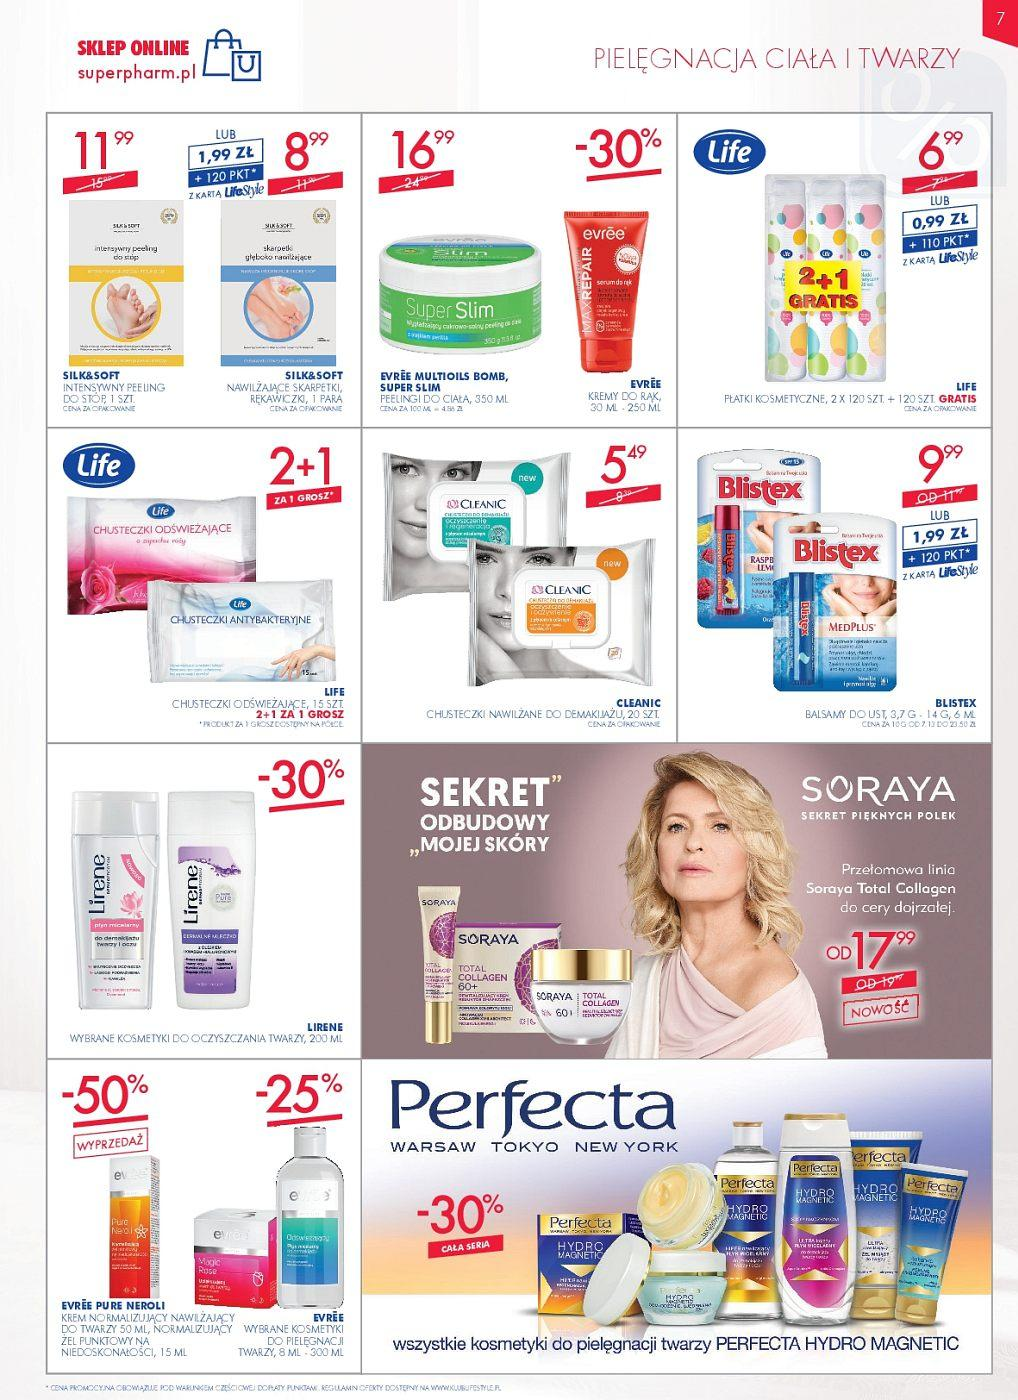 Gazetka promocyjna Superpharm do 13/06/2018 str.7